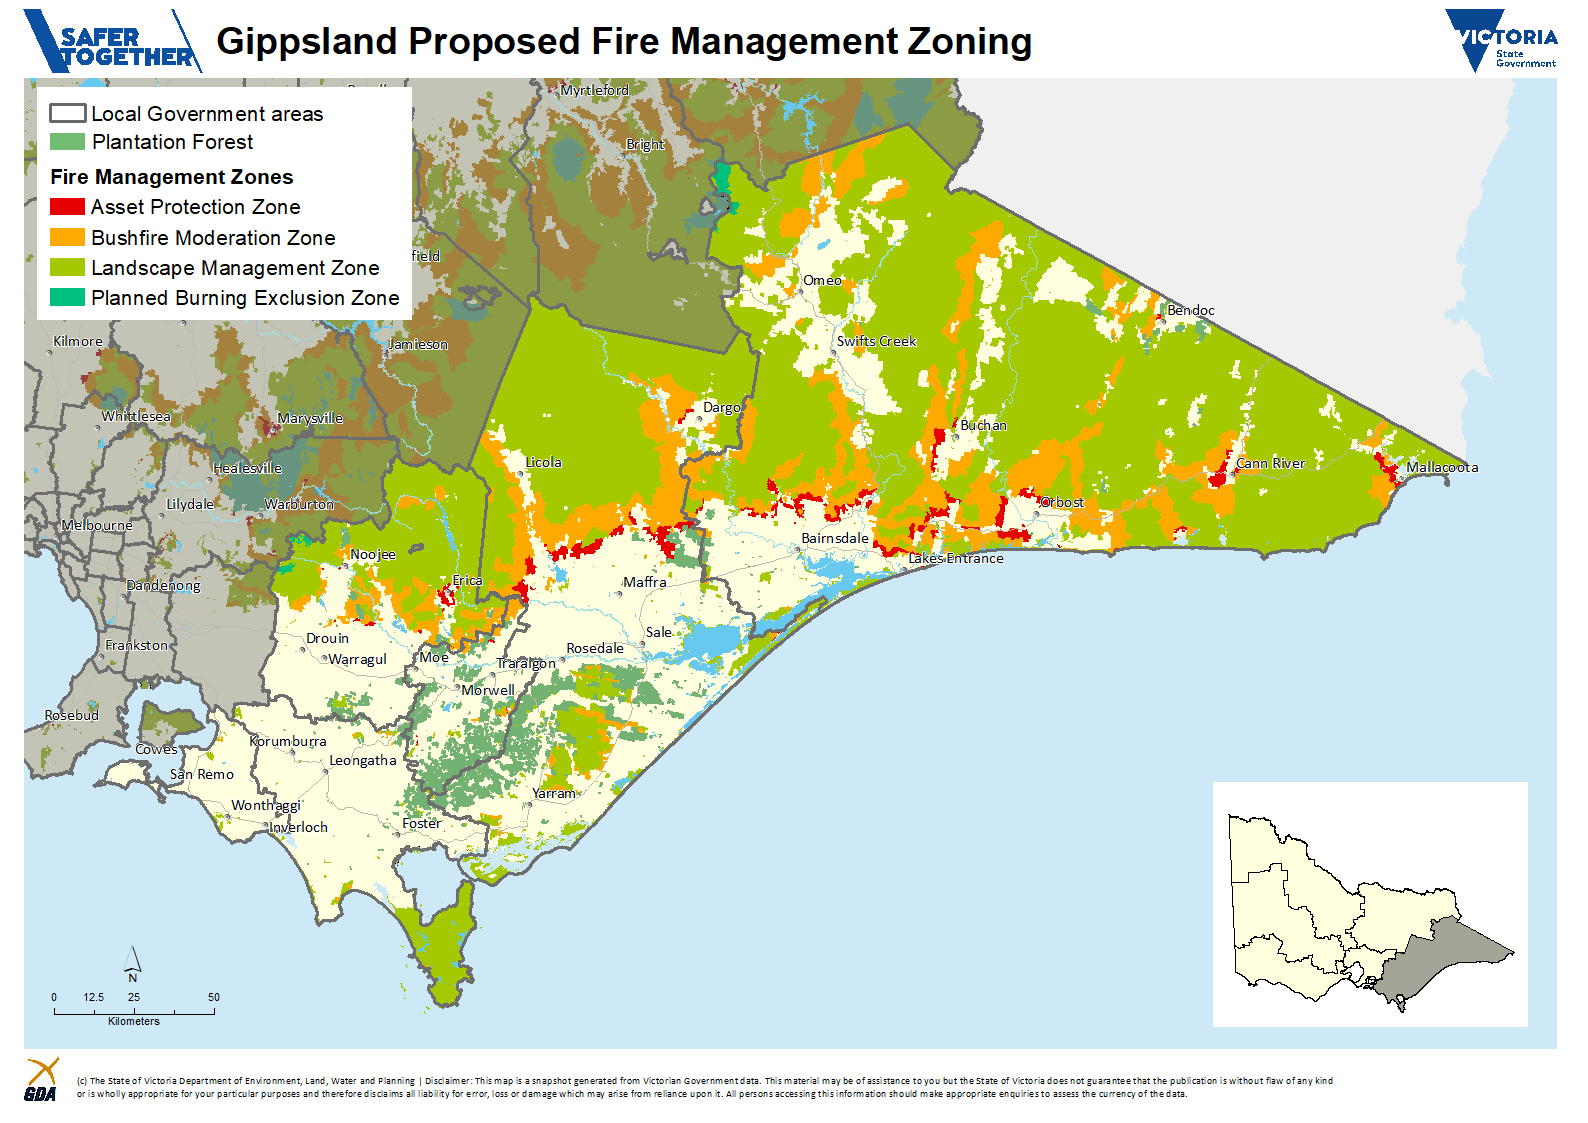 A map of the proposed Fire Management Zones in the Gippsland Region